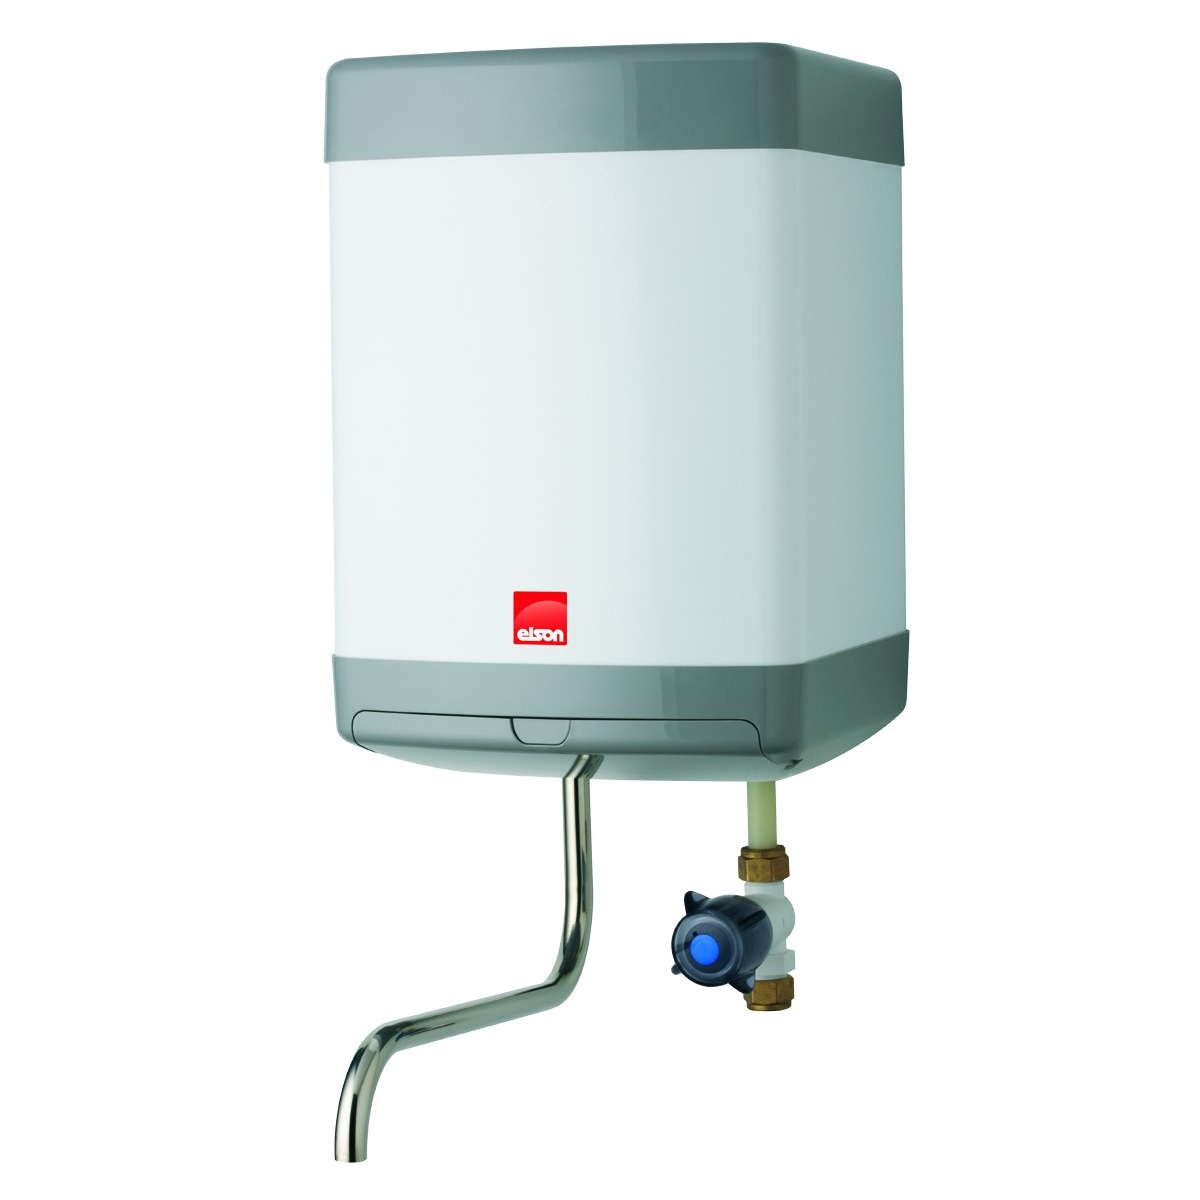 Elson EOS7 Oversink Water Heater - - Best Price Available